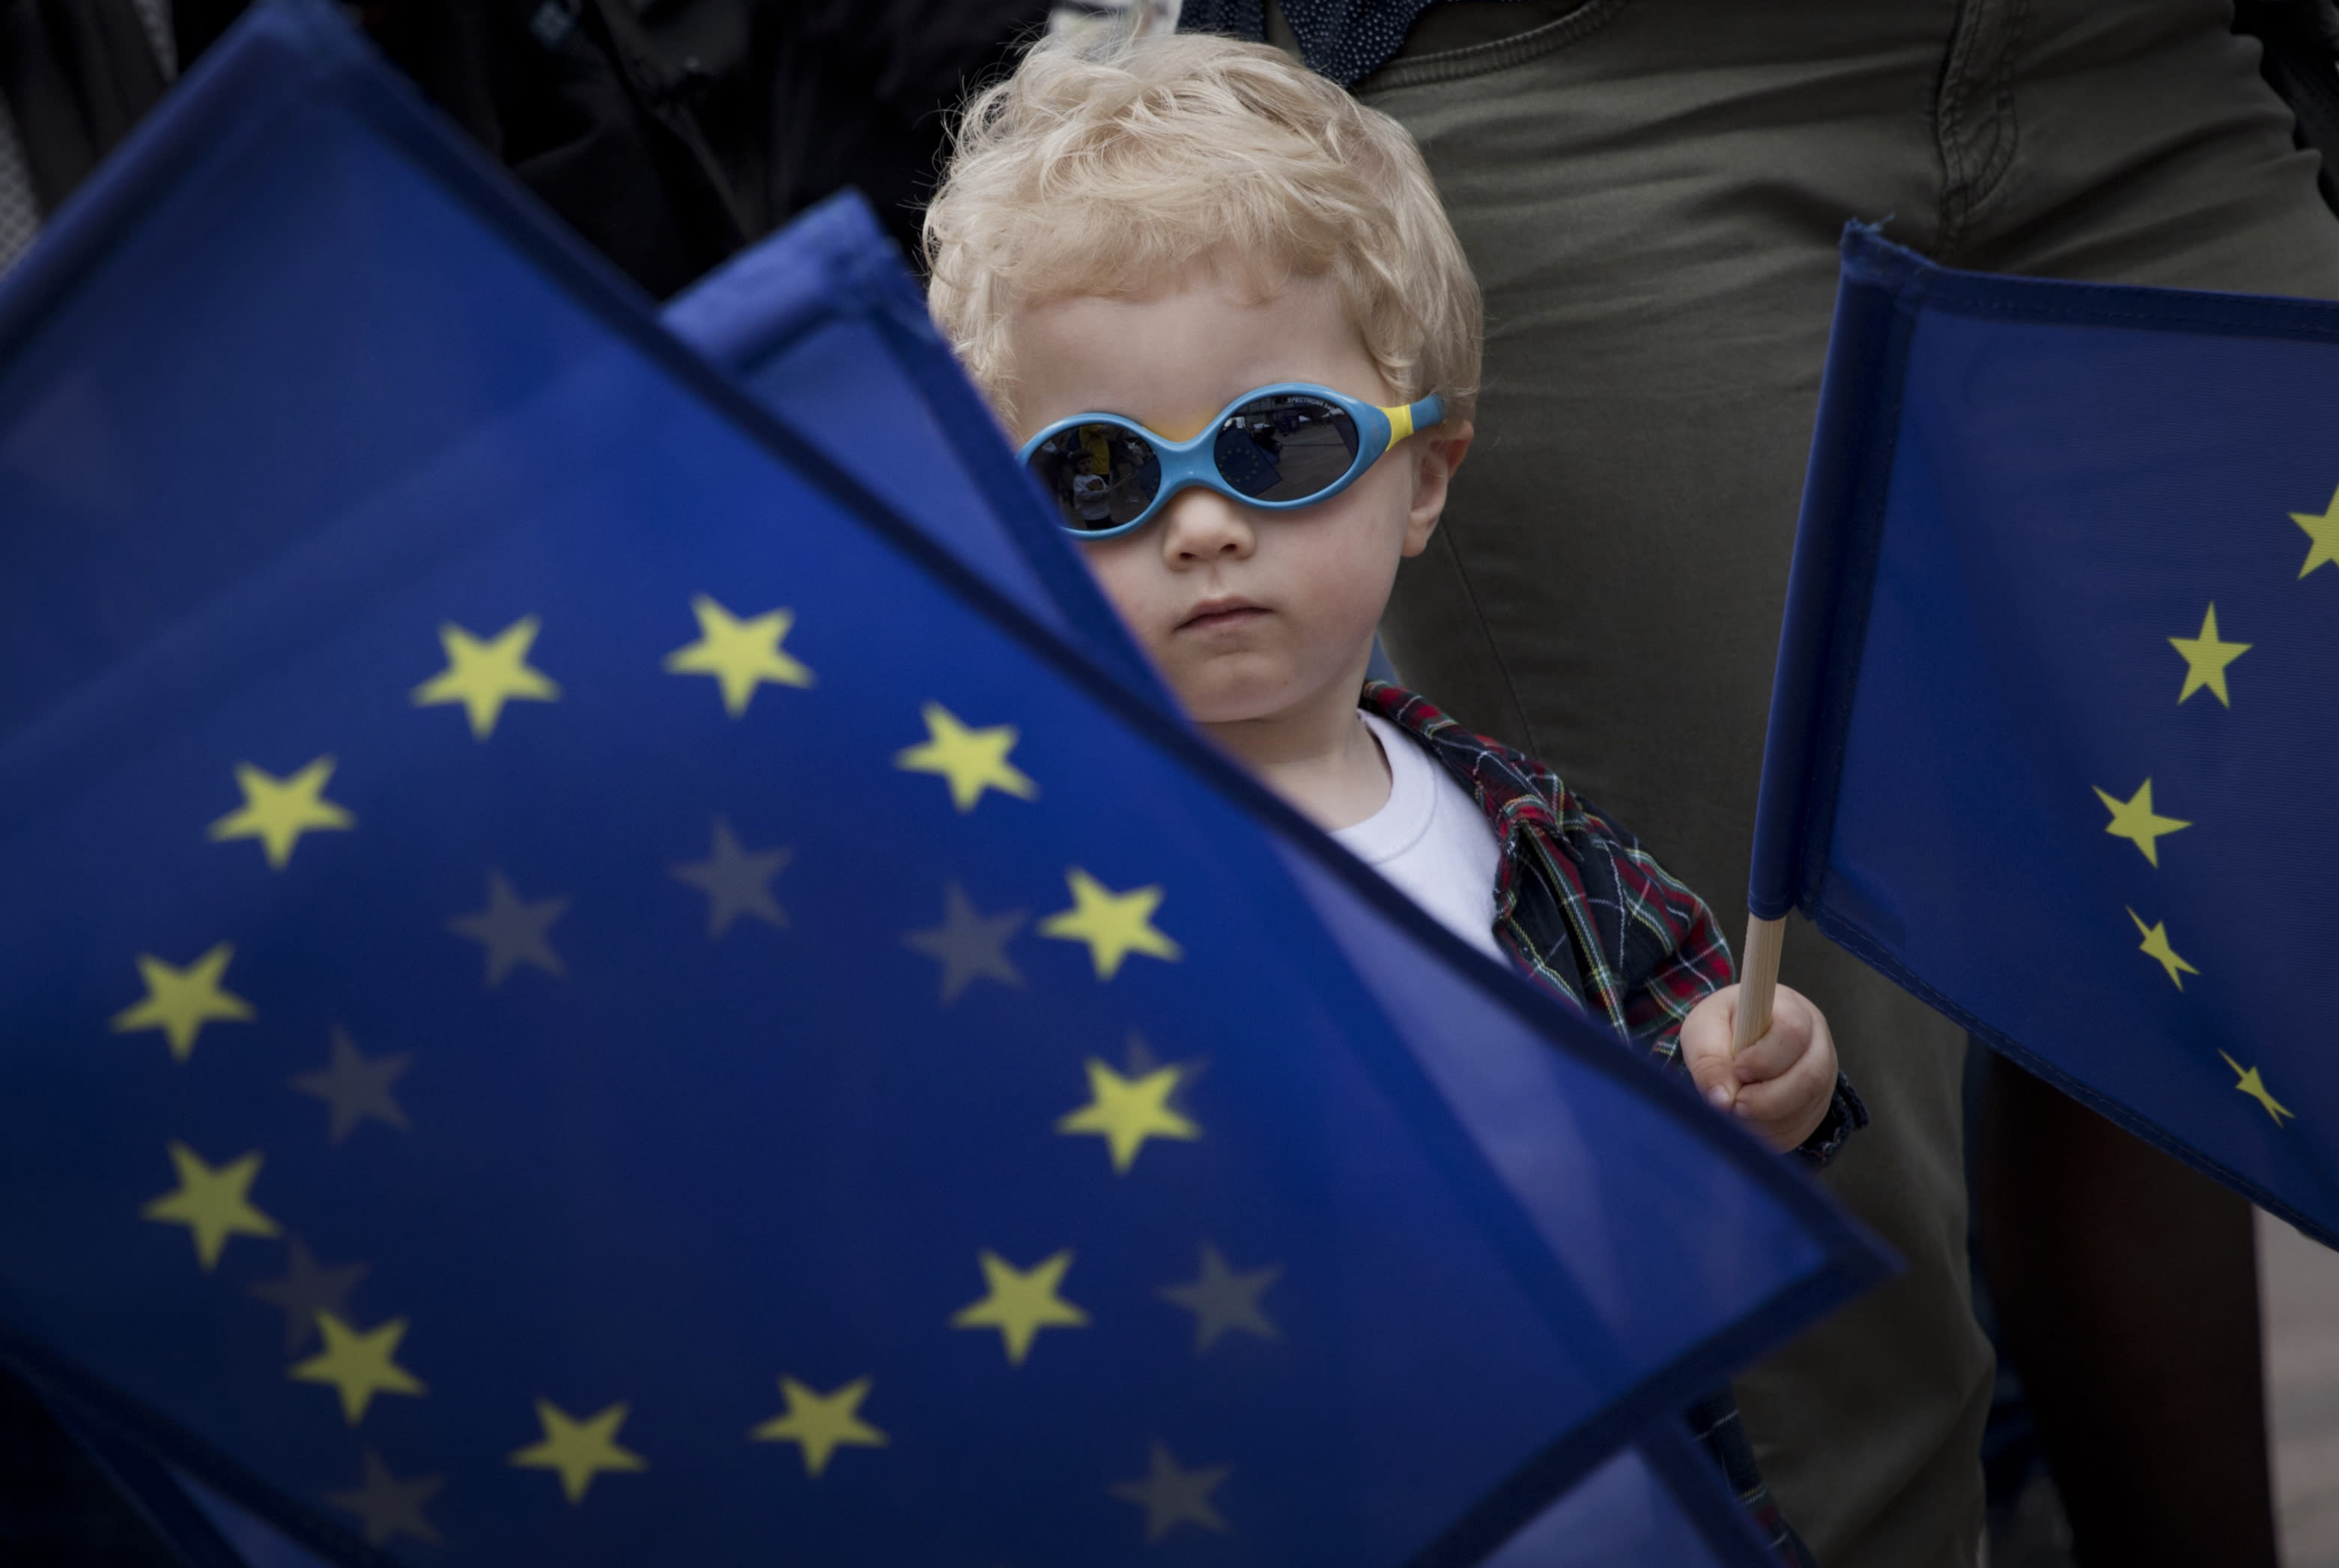 A young boys waves an EU flag during a festival outside the European Parliament in Brussels, Sunday, May 26, 2019. From Germany and France to Cyprus and Estonia, voters from 21 nations went to the polls Sunday in the final day of a crucial European Parliament election that could see major gains by the far-right, nationalist and populist movements that are on the rise across much of the continent. (AP Photo/Virginia Mayo)